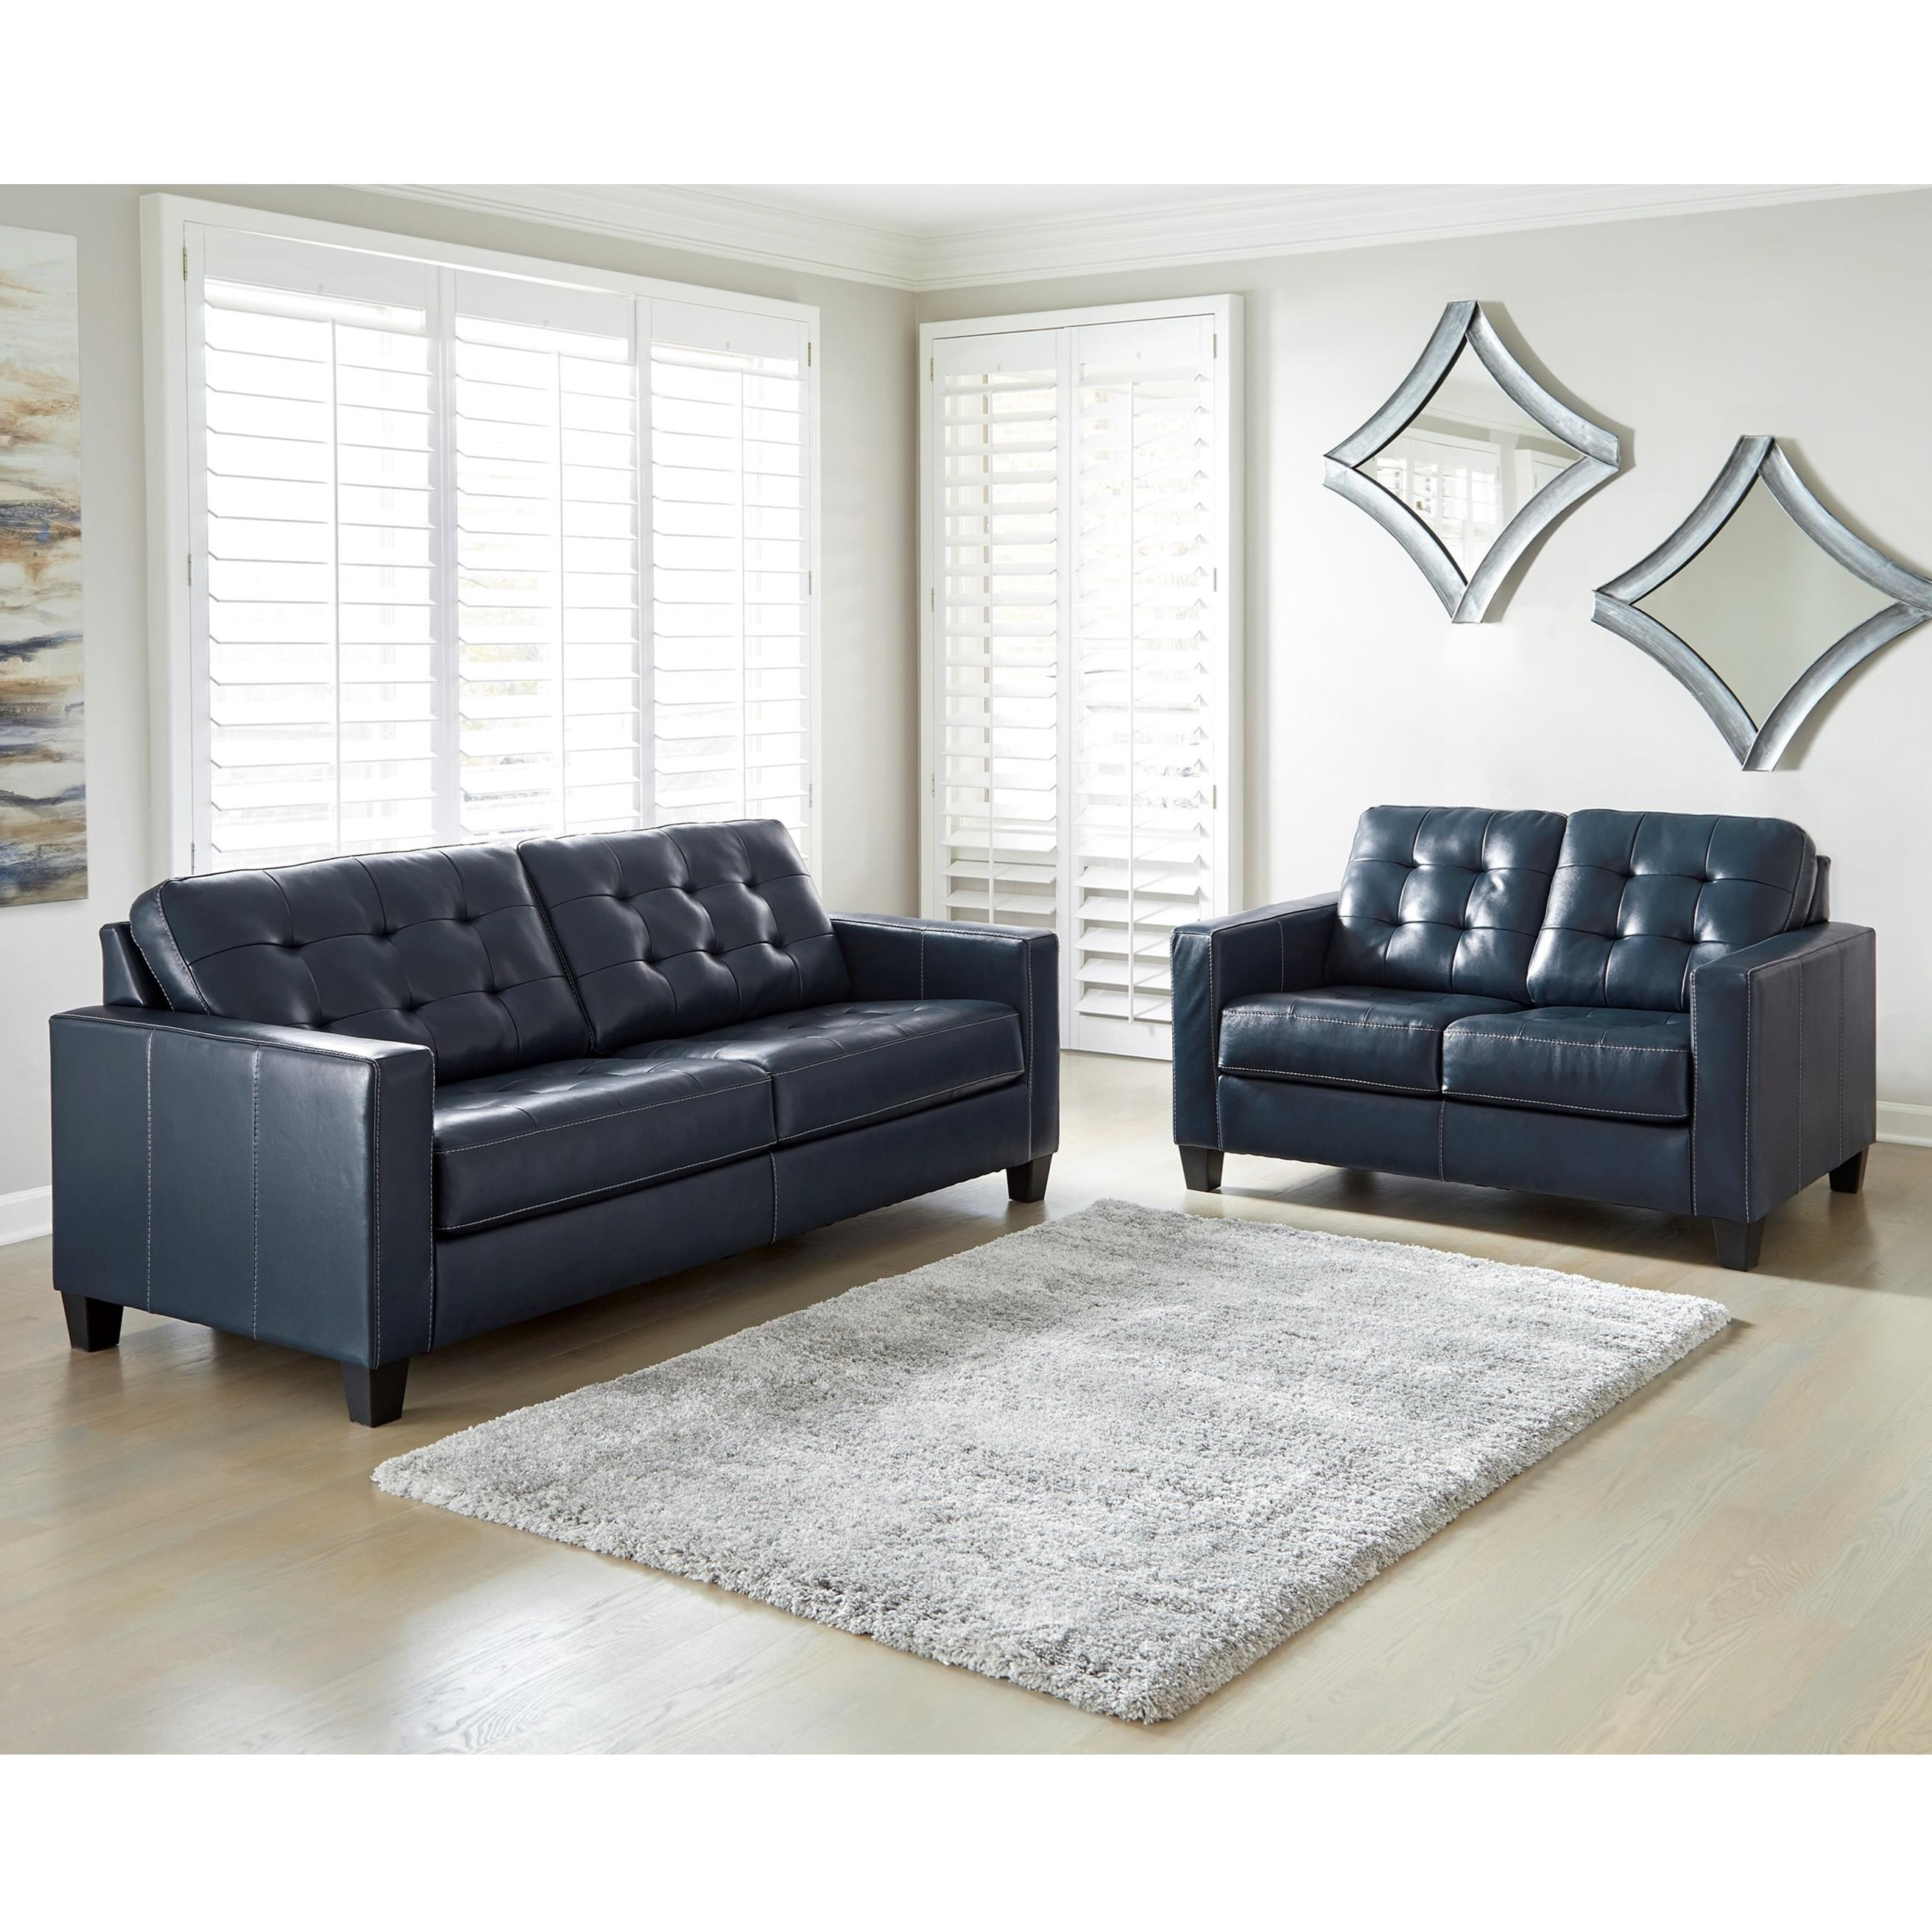 Altonbury Stationary Living Room Group by StyleLine at EFO Furniture Outlet